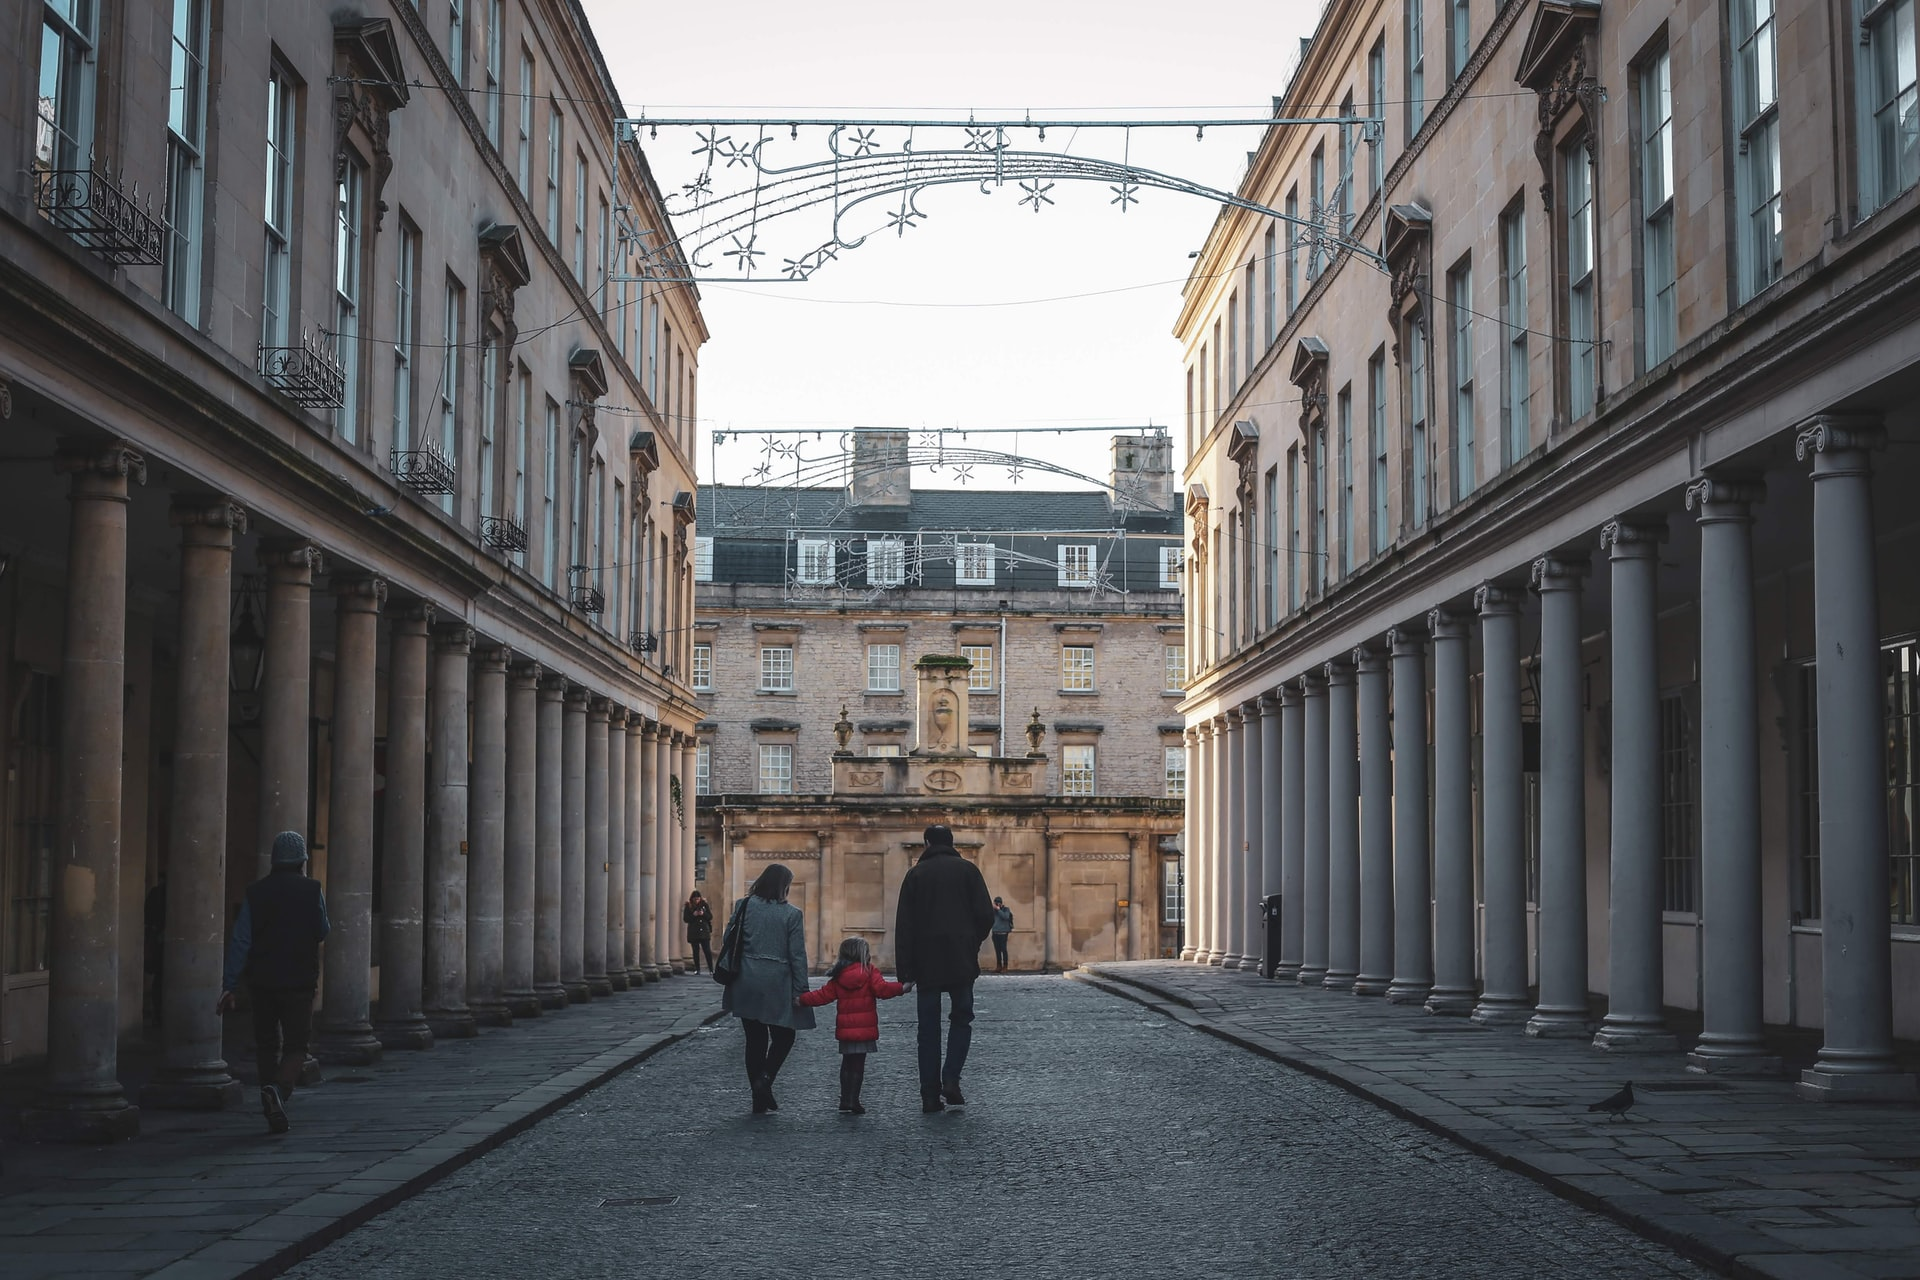 couple-with-young-child-walking-down-old-historic-street-in-bath-at-christmas